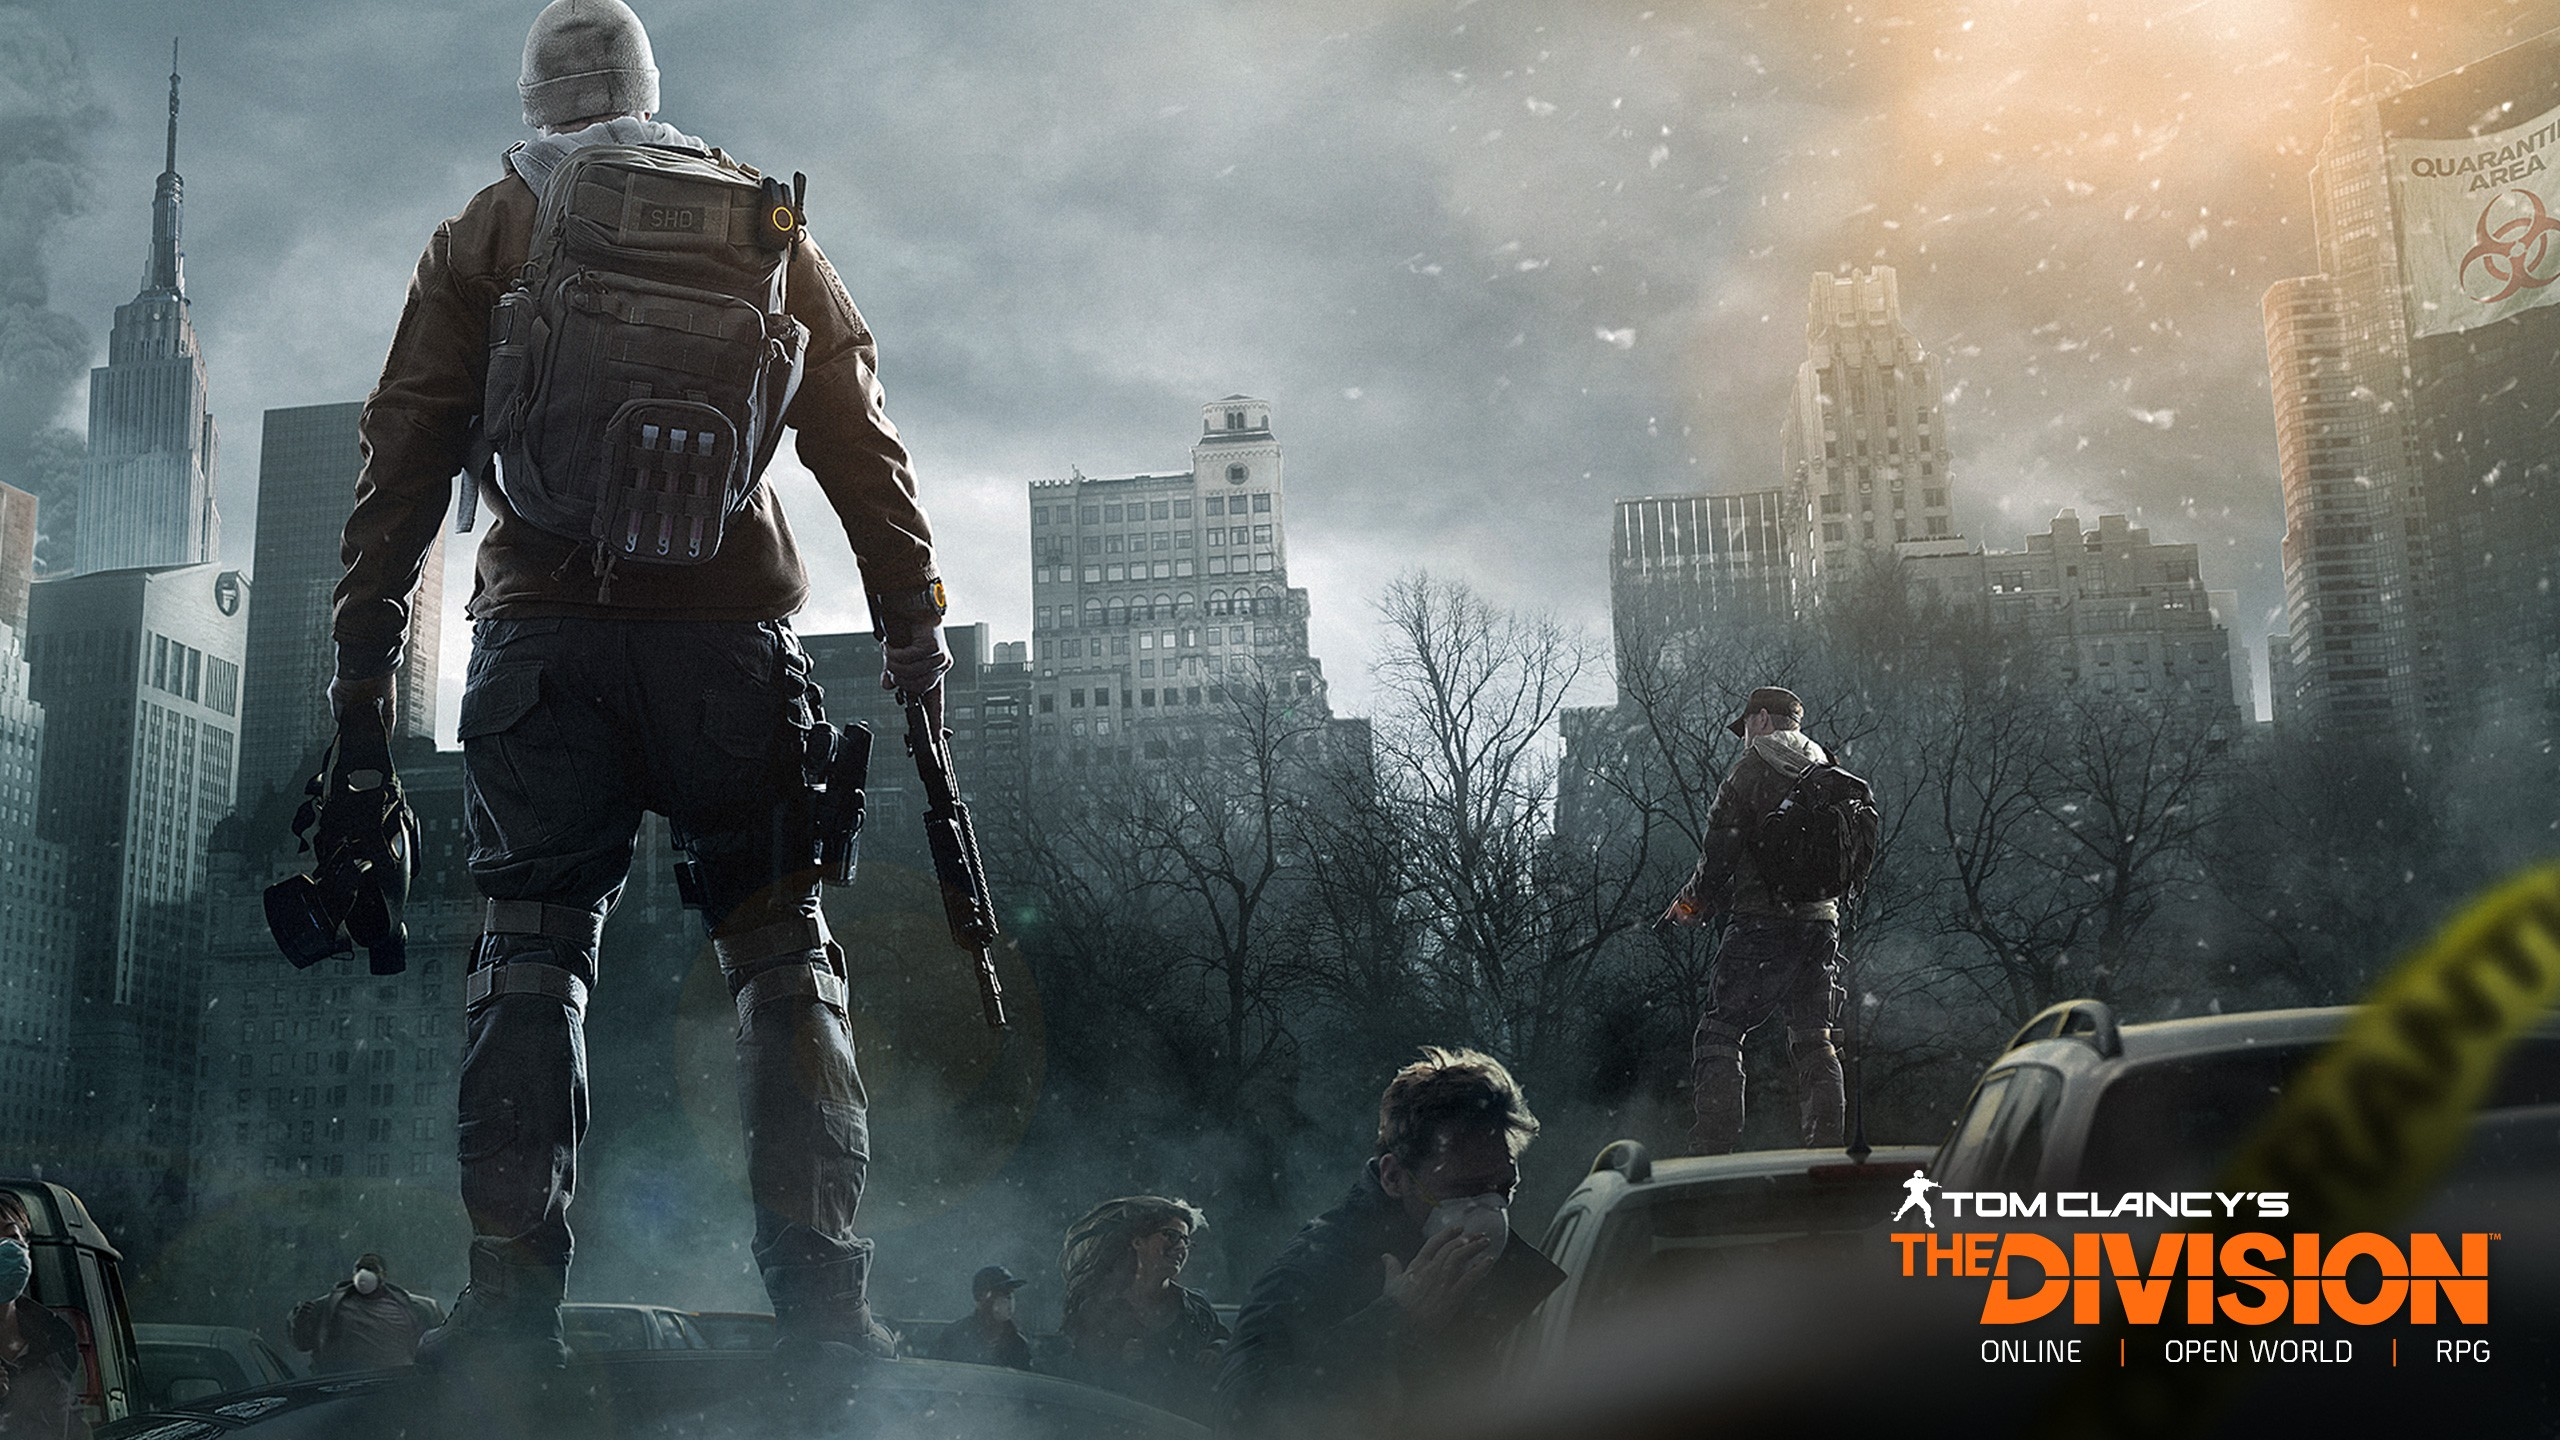 Tom Clancys The Division 4k Wallpaper For Desktop And